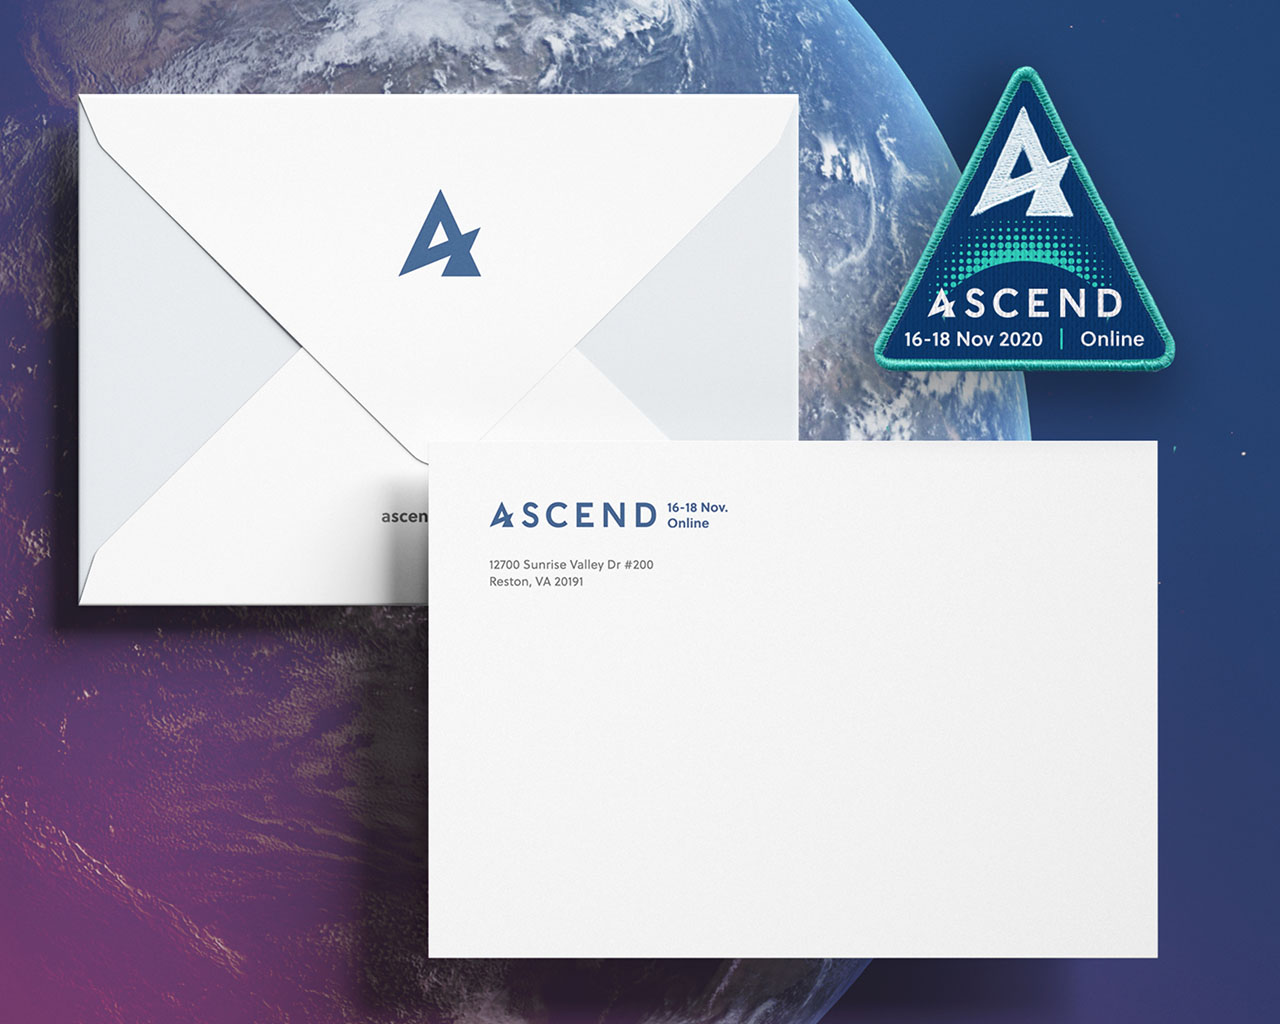 Branded envelope and mission patch for ASCEND